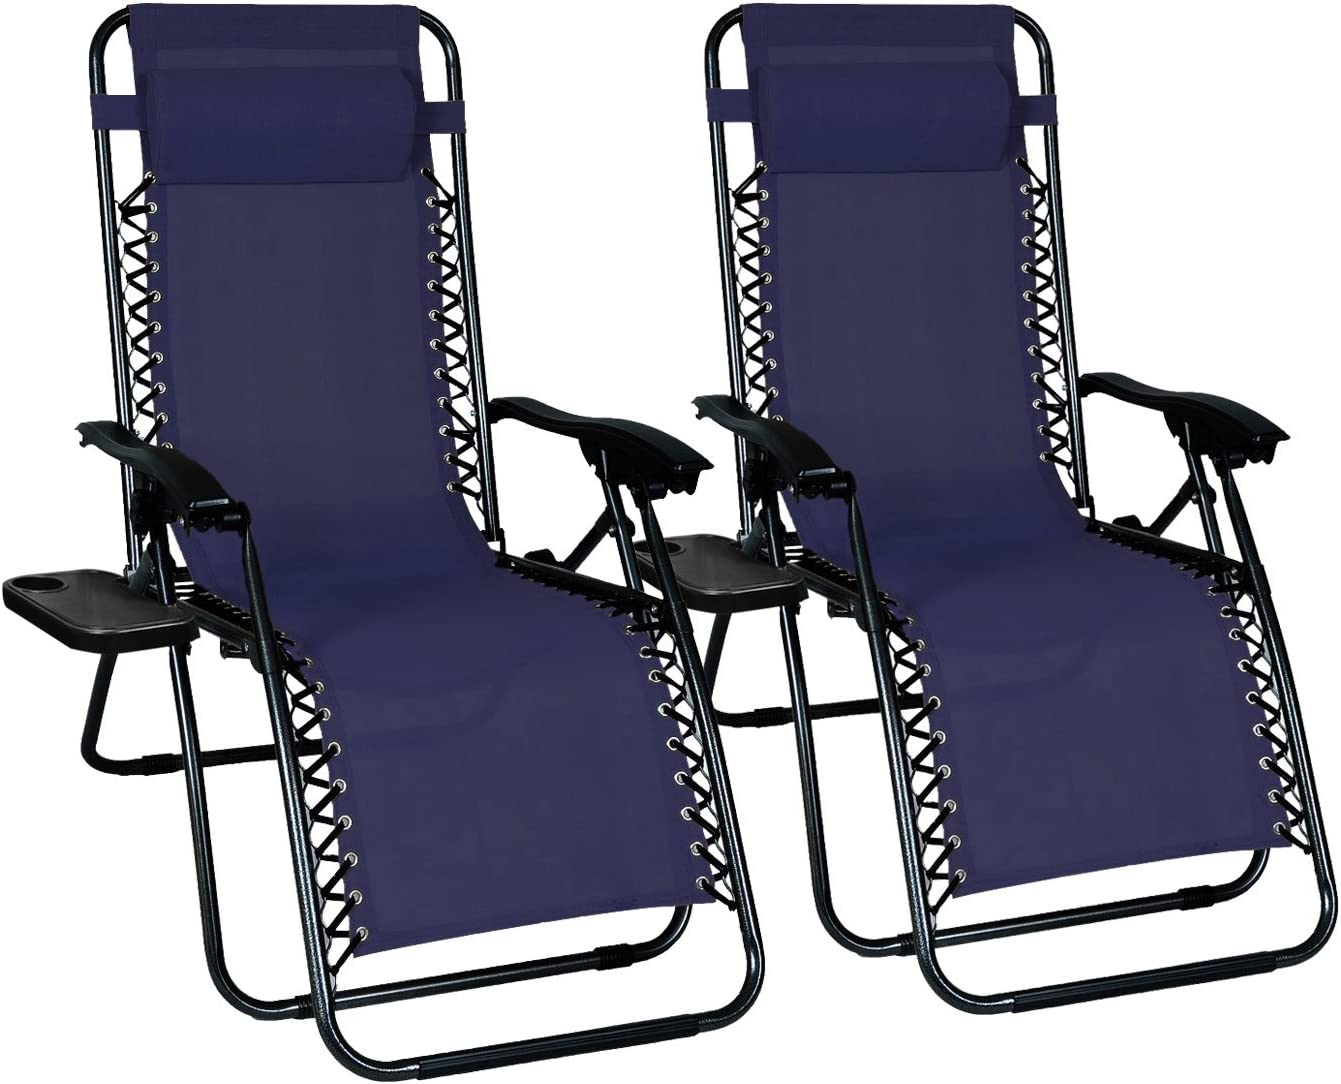 Odaof Zero Gravity Chair Recliner Outdoor Patio Lounge Chair W Cup Holder, 2 Pack, Blue